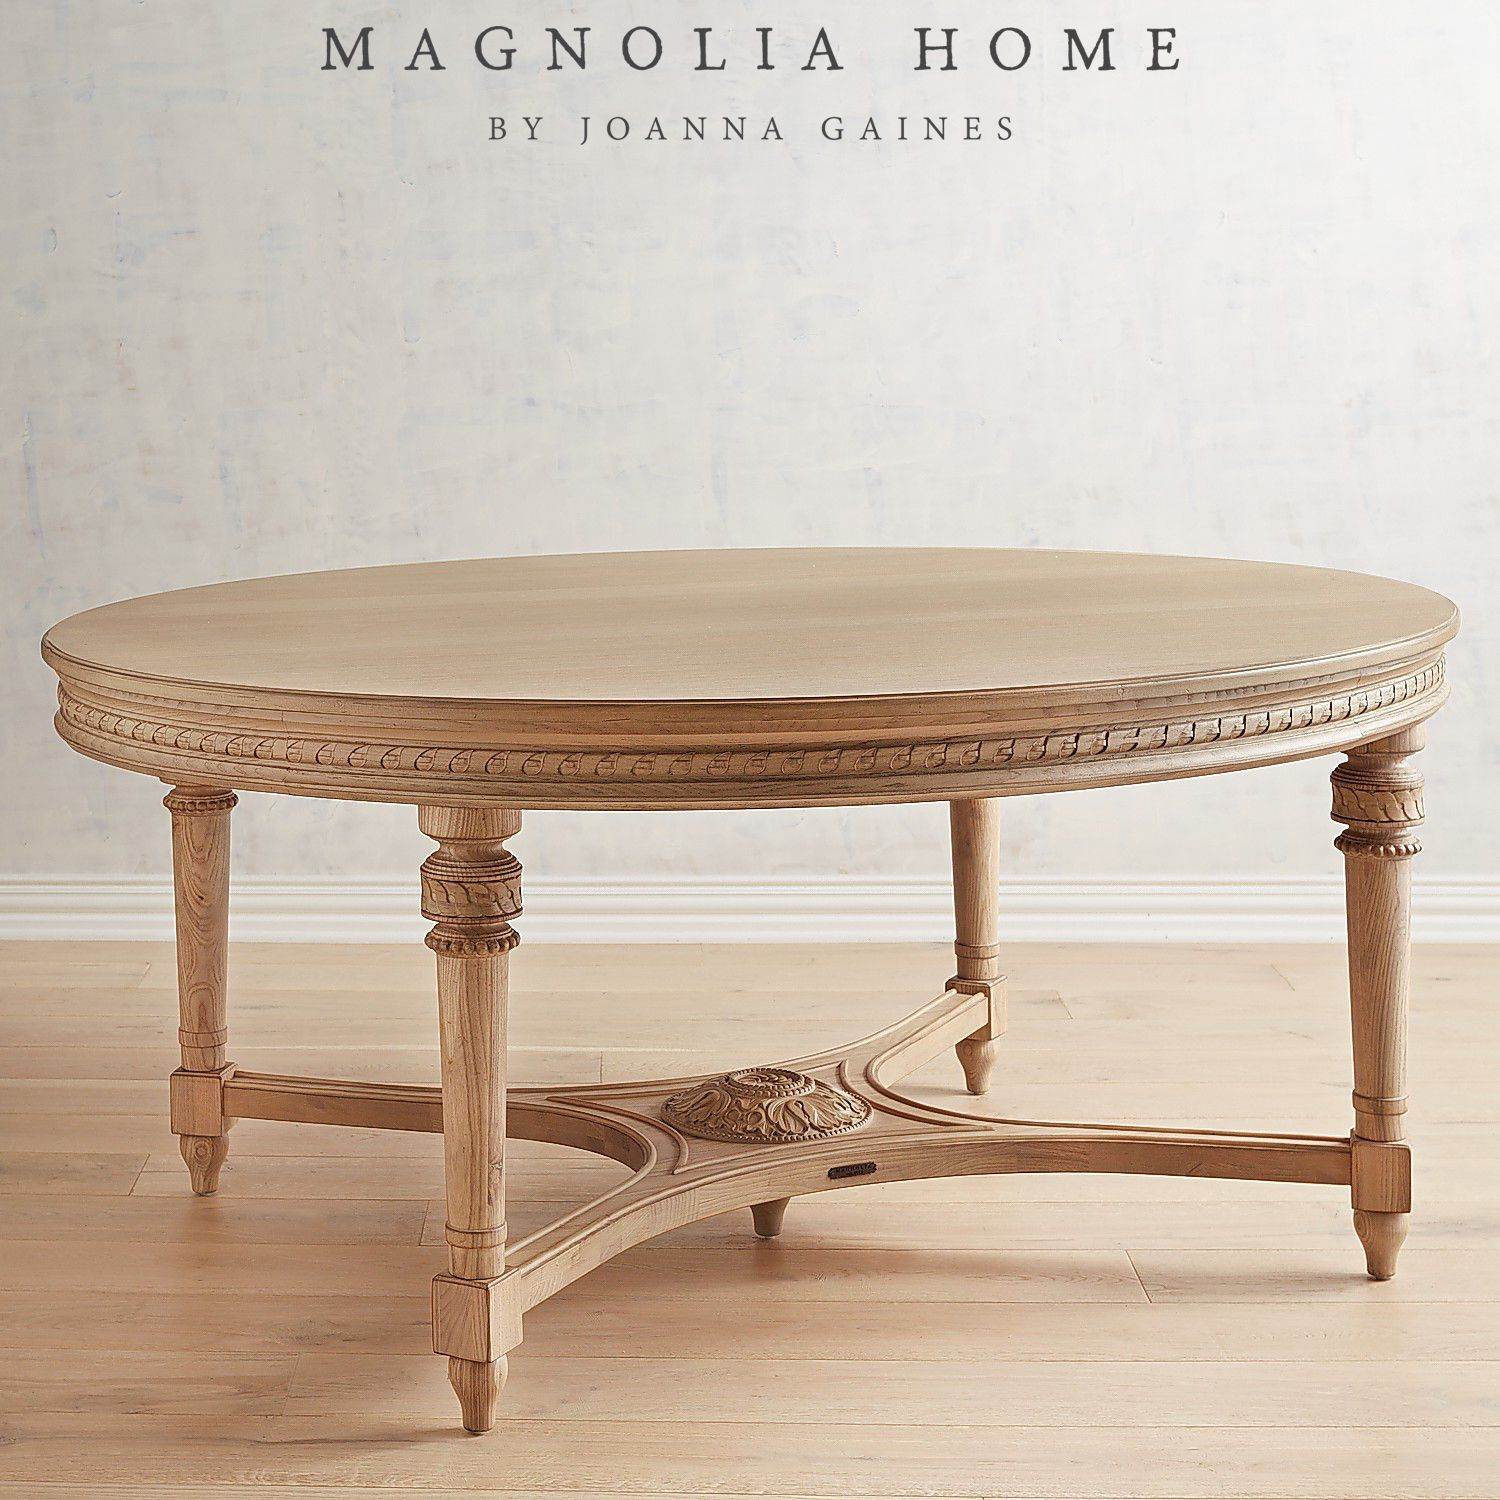 22 French Country Decorating Ideas For Modern Dining Room: Magnolia Home English Country Wheat Oval Dining Table